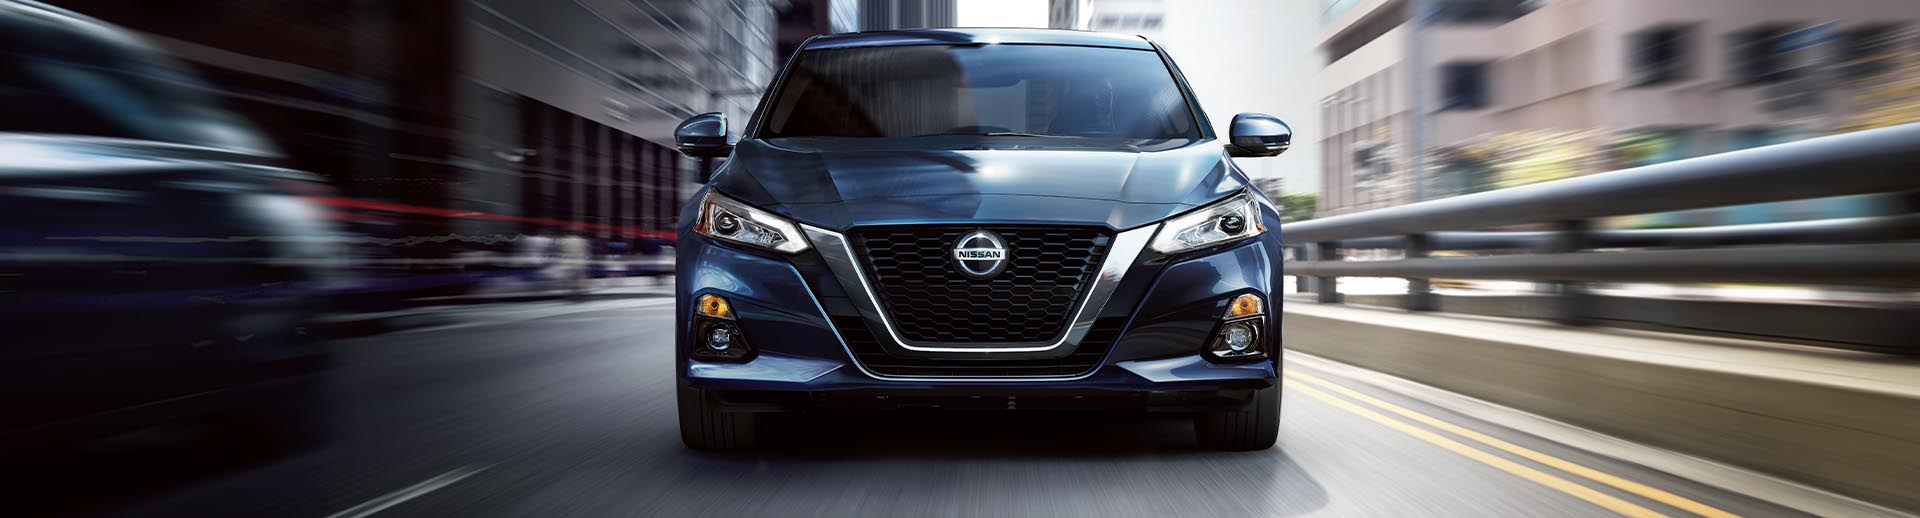 2020 Nissan Altima Lifestyle Photo